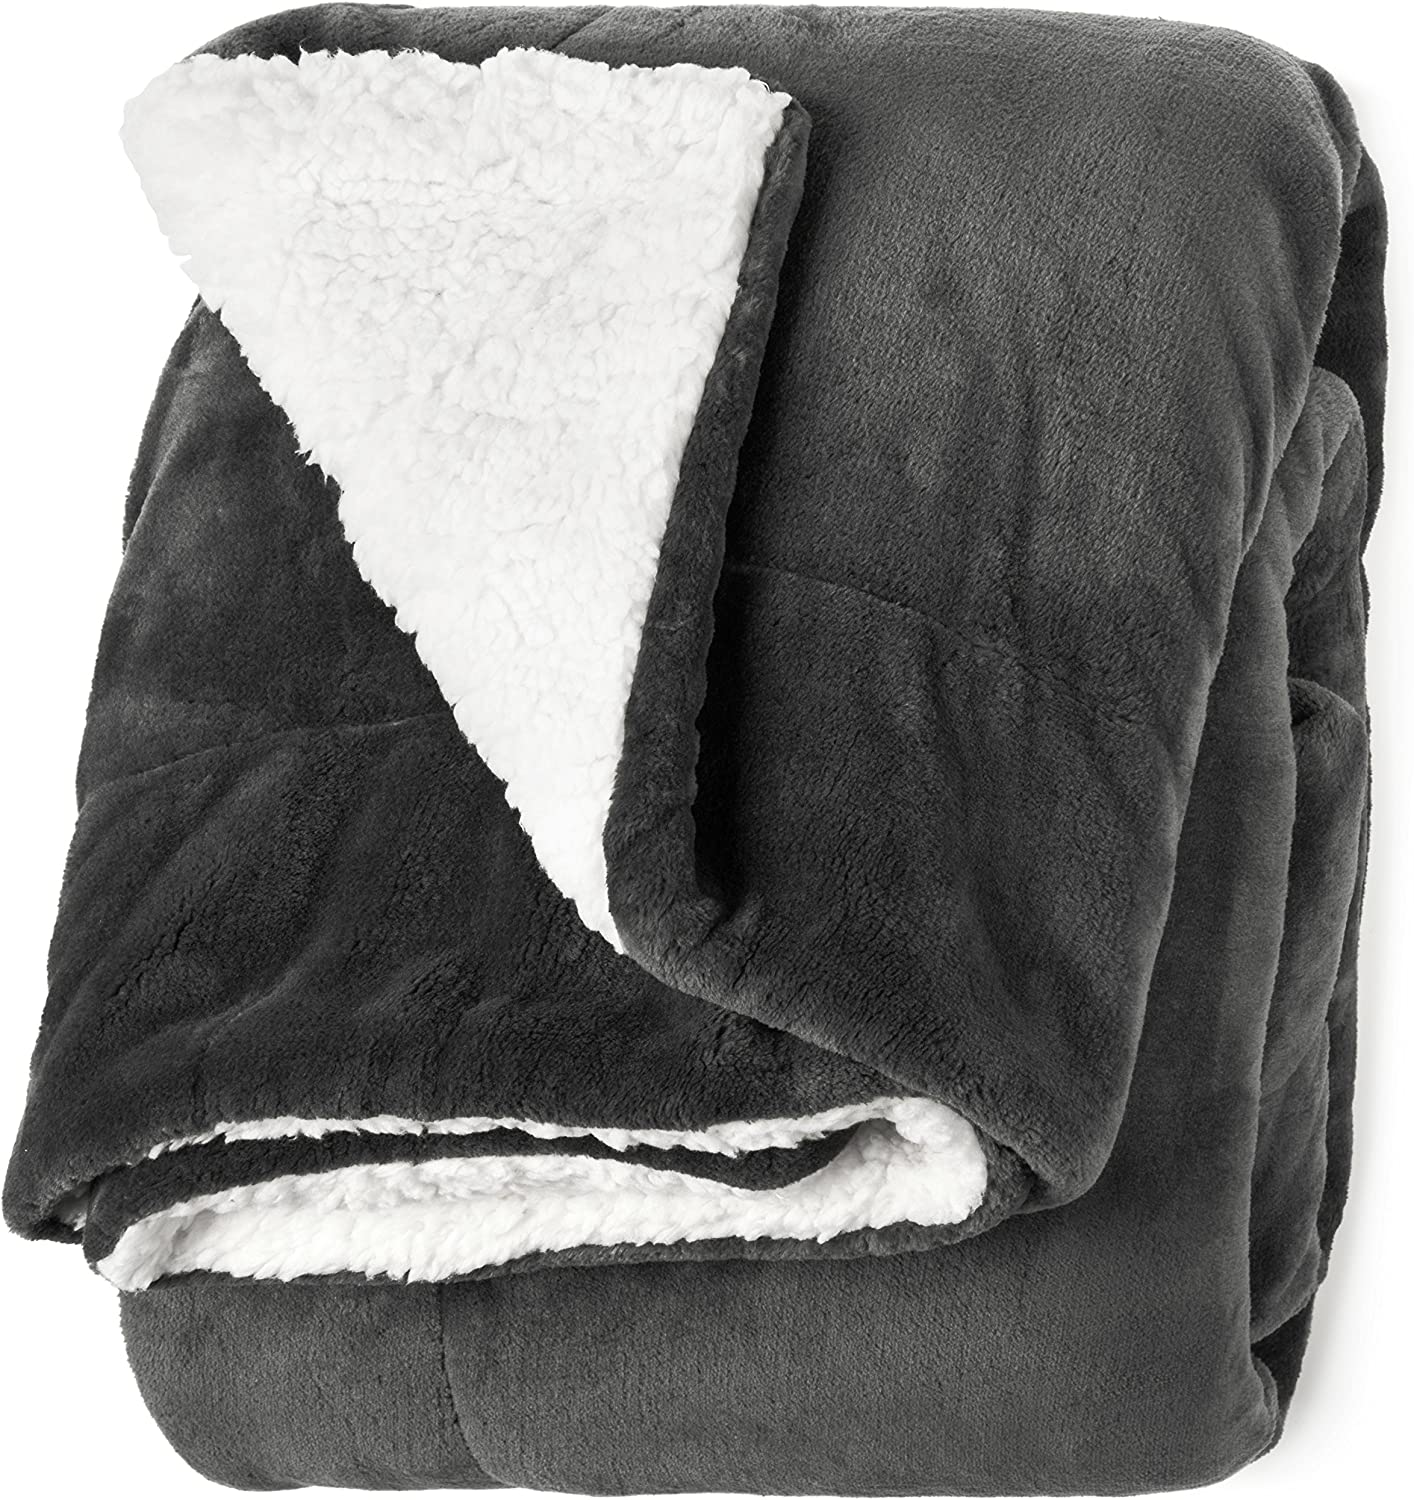 """Life Comfort Microfiber Plush Polyester 60""""x70"""" Large All Season Blanket for Bed or Couch Ultimate Sherpa Throw, Gray"""